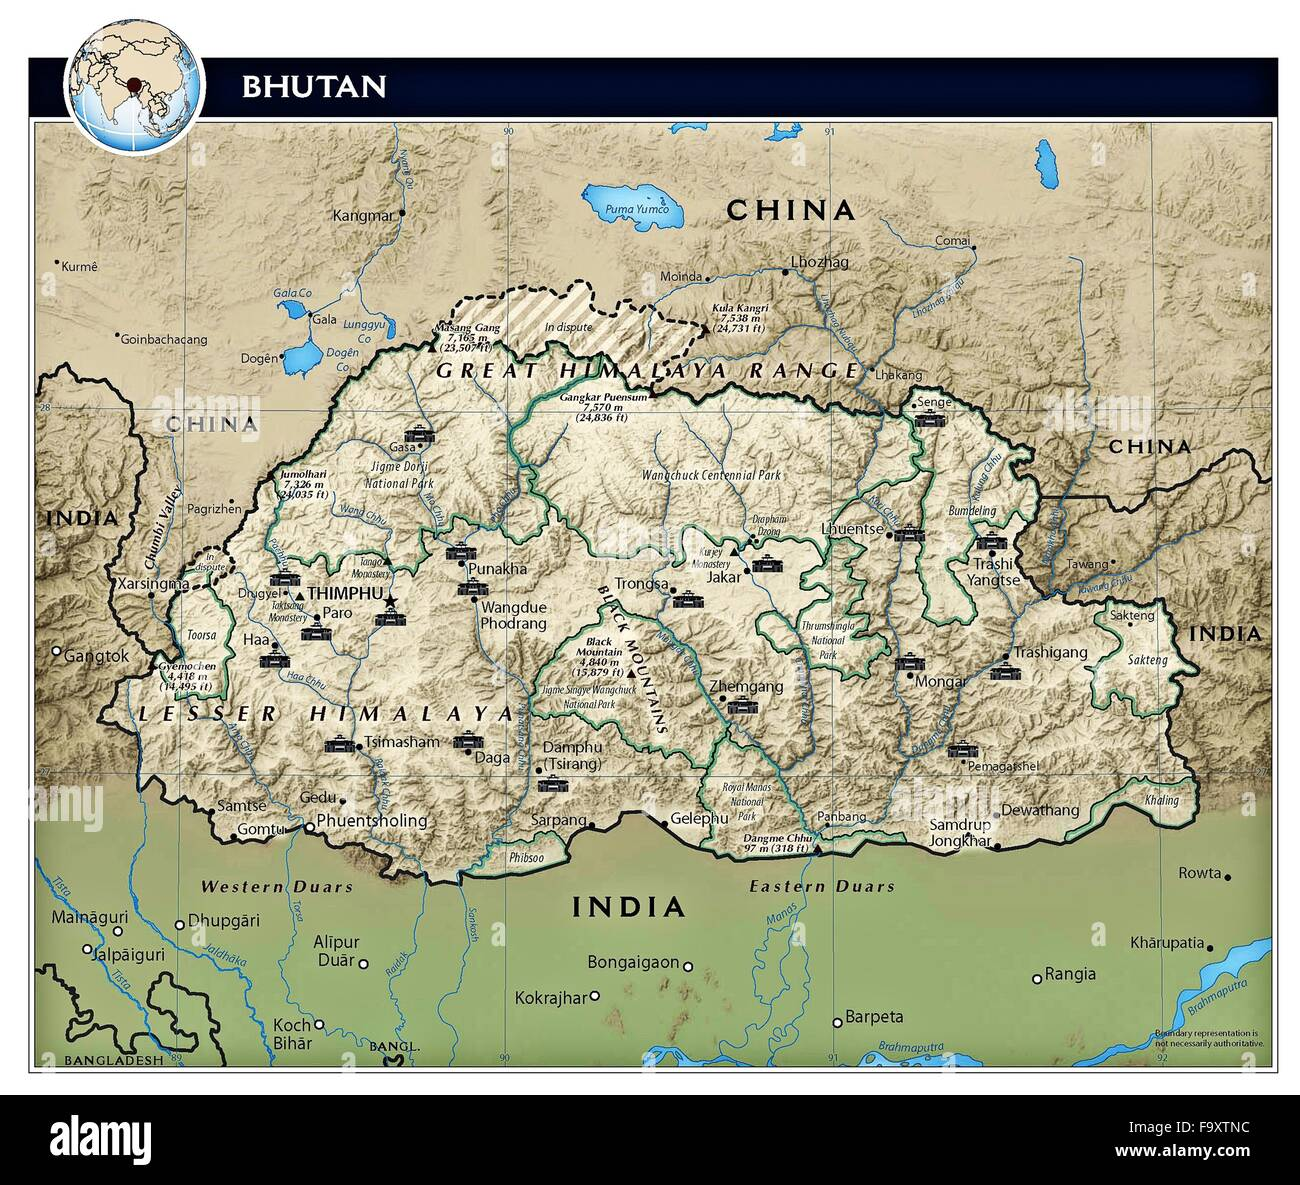 Bhutan country physiography map Stock Photo: 92173912 - Alamy